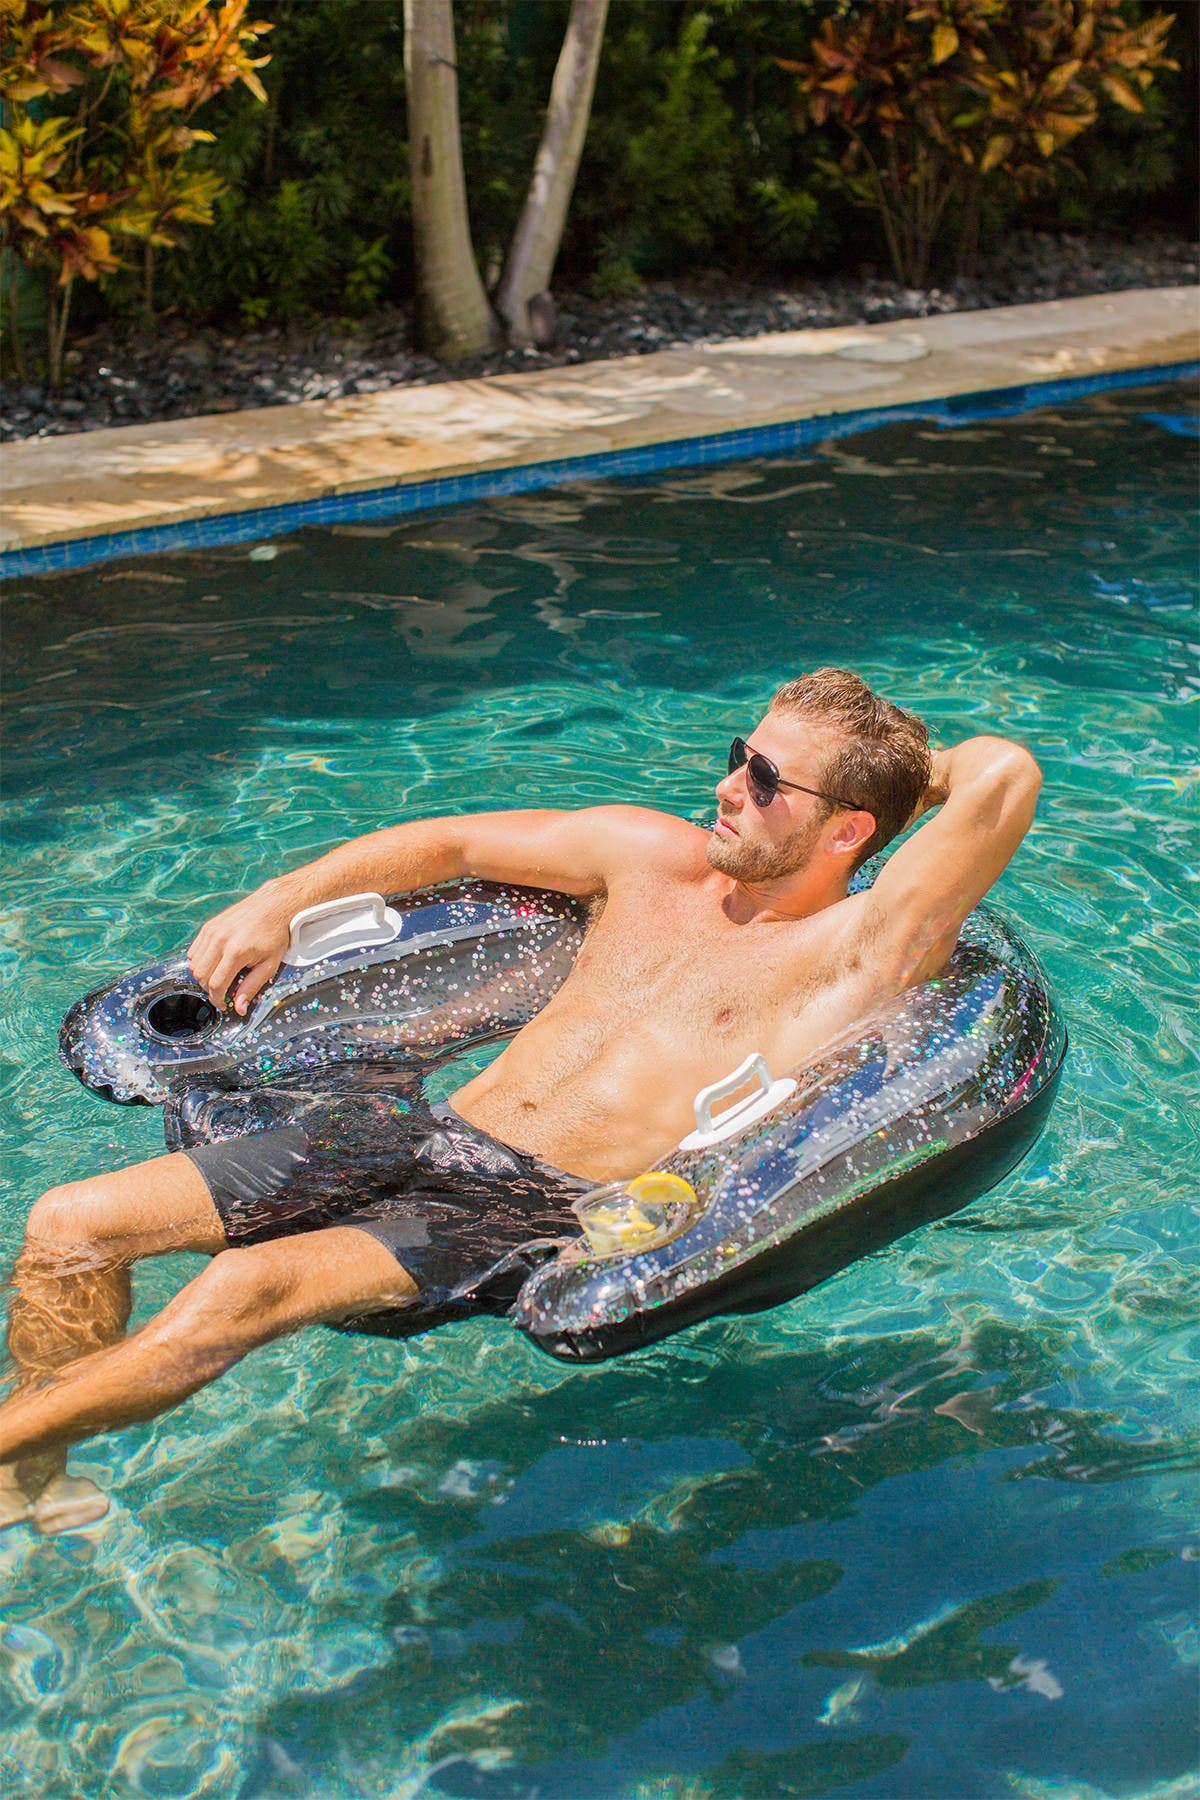 Glitterfied Beach /& Swimming Pool Float with Cup Holders Poolcandy Black Glitter Sun Chair The Ultimate Chair in The Sun.